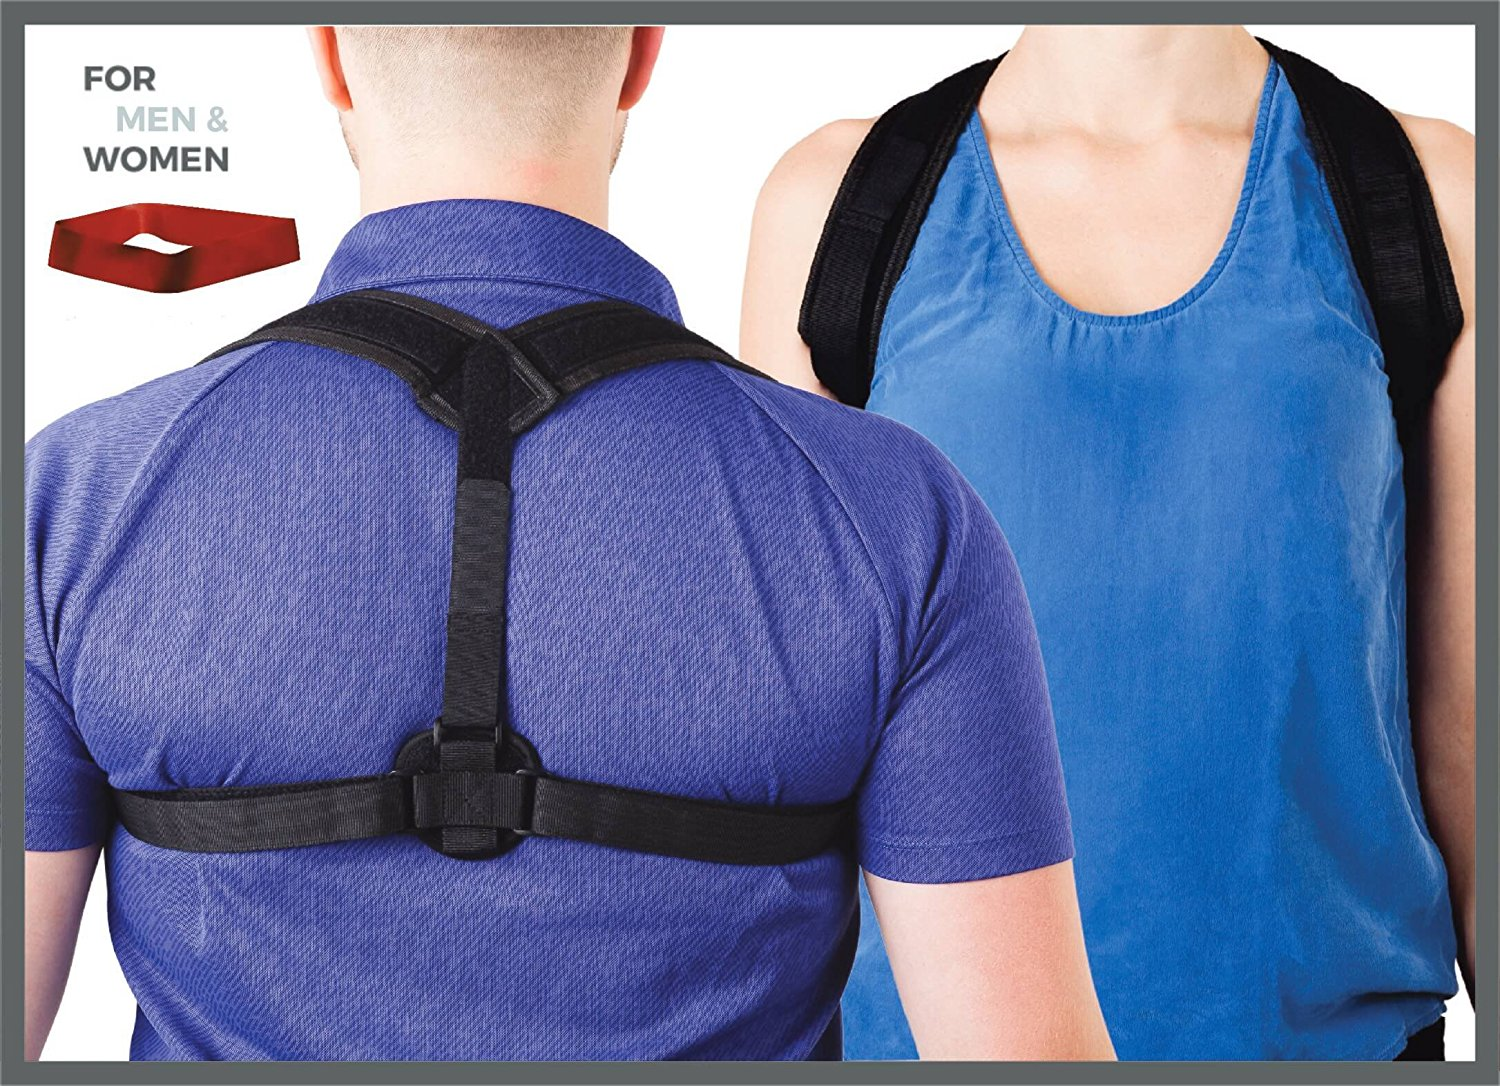 Posture Corrector for Women & Men - Adjustable back brace for upper and lower back correction - Posture, lumbar, clavicle and shoulder support in a natural way - Exercise resistance band included